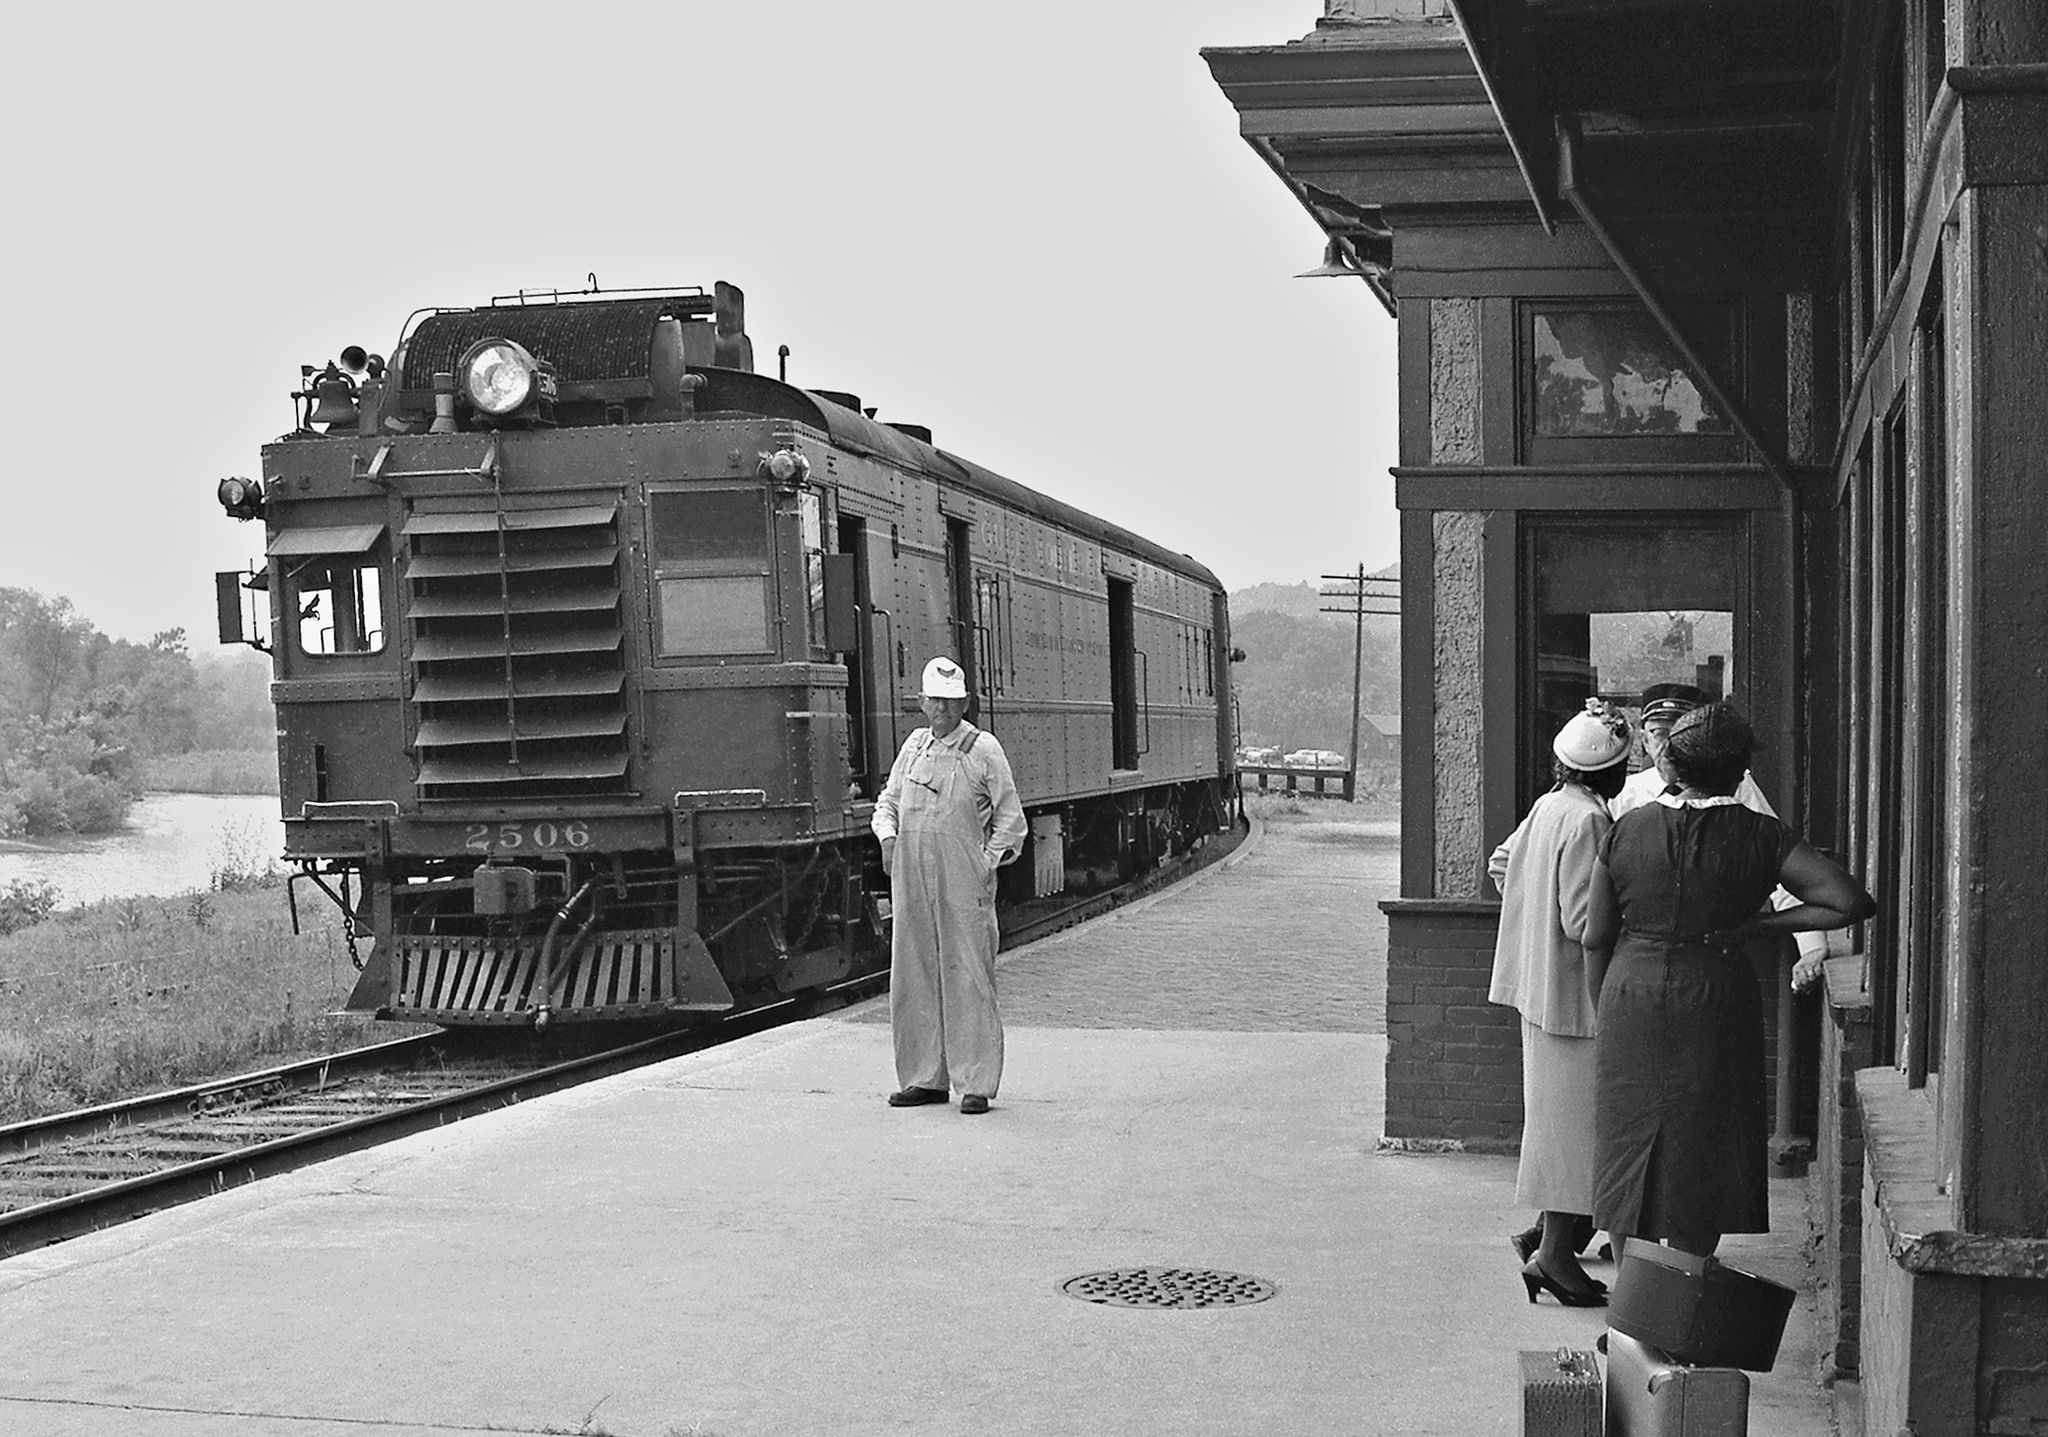 Gmo Louisiana Missouri 1959 Gulf Mobile And Ohio Railroad S Daily Run From Bloomington Illinois To Kansas City With Images Railroad Photography Model Trains Pictures